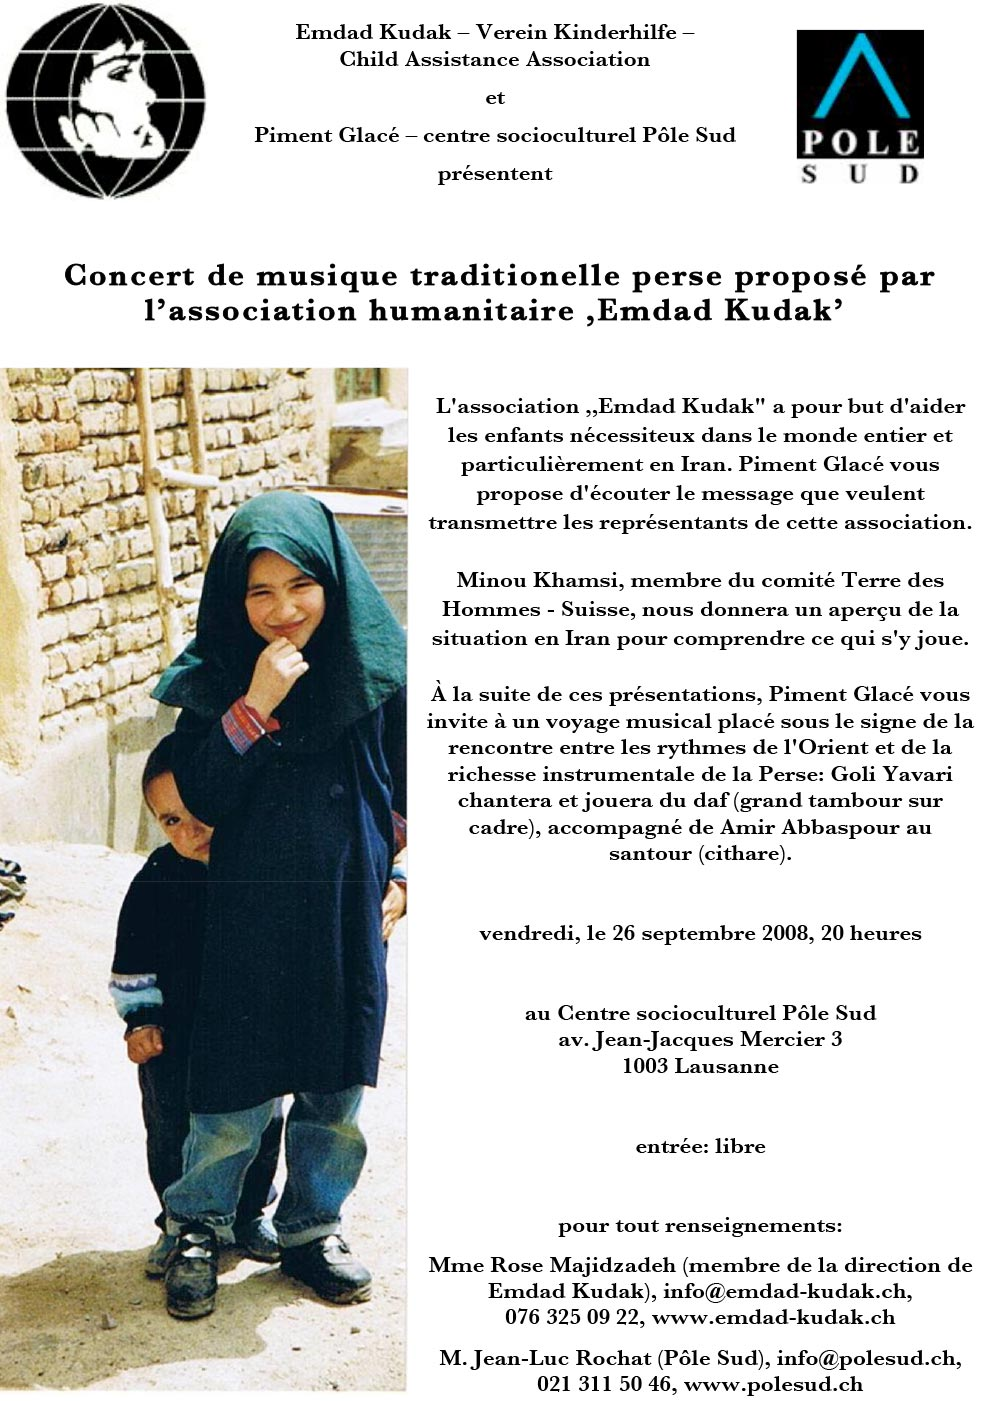 Concert de musique traditional perse propose par l'association humanitair Emdad Kudak